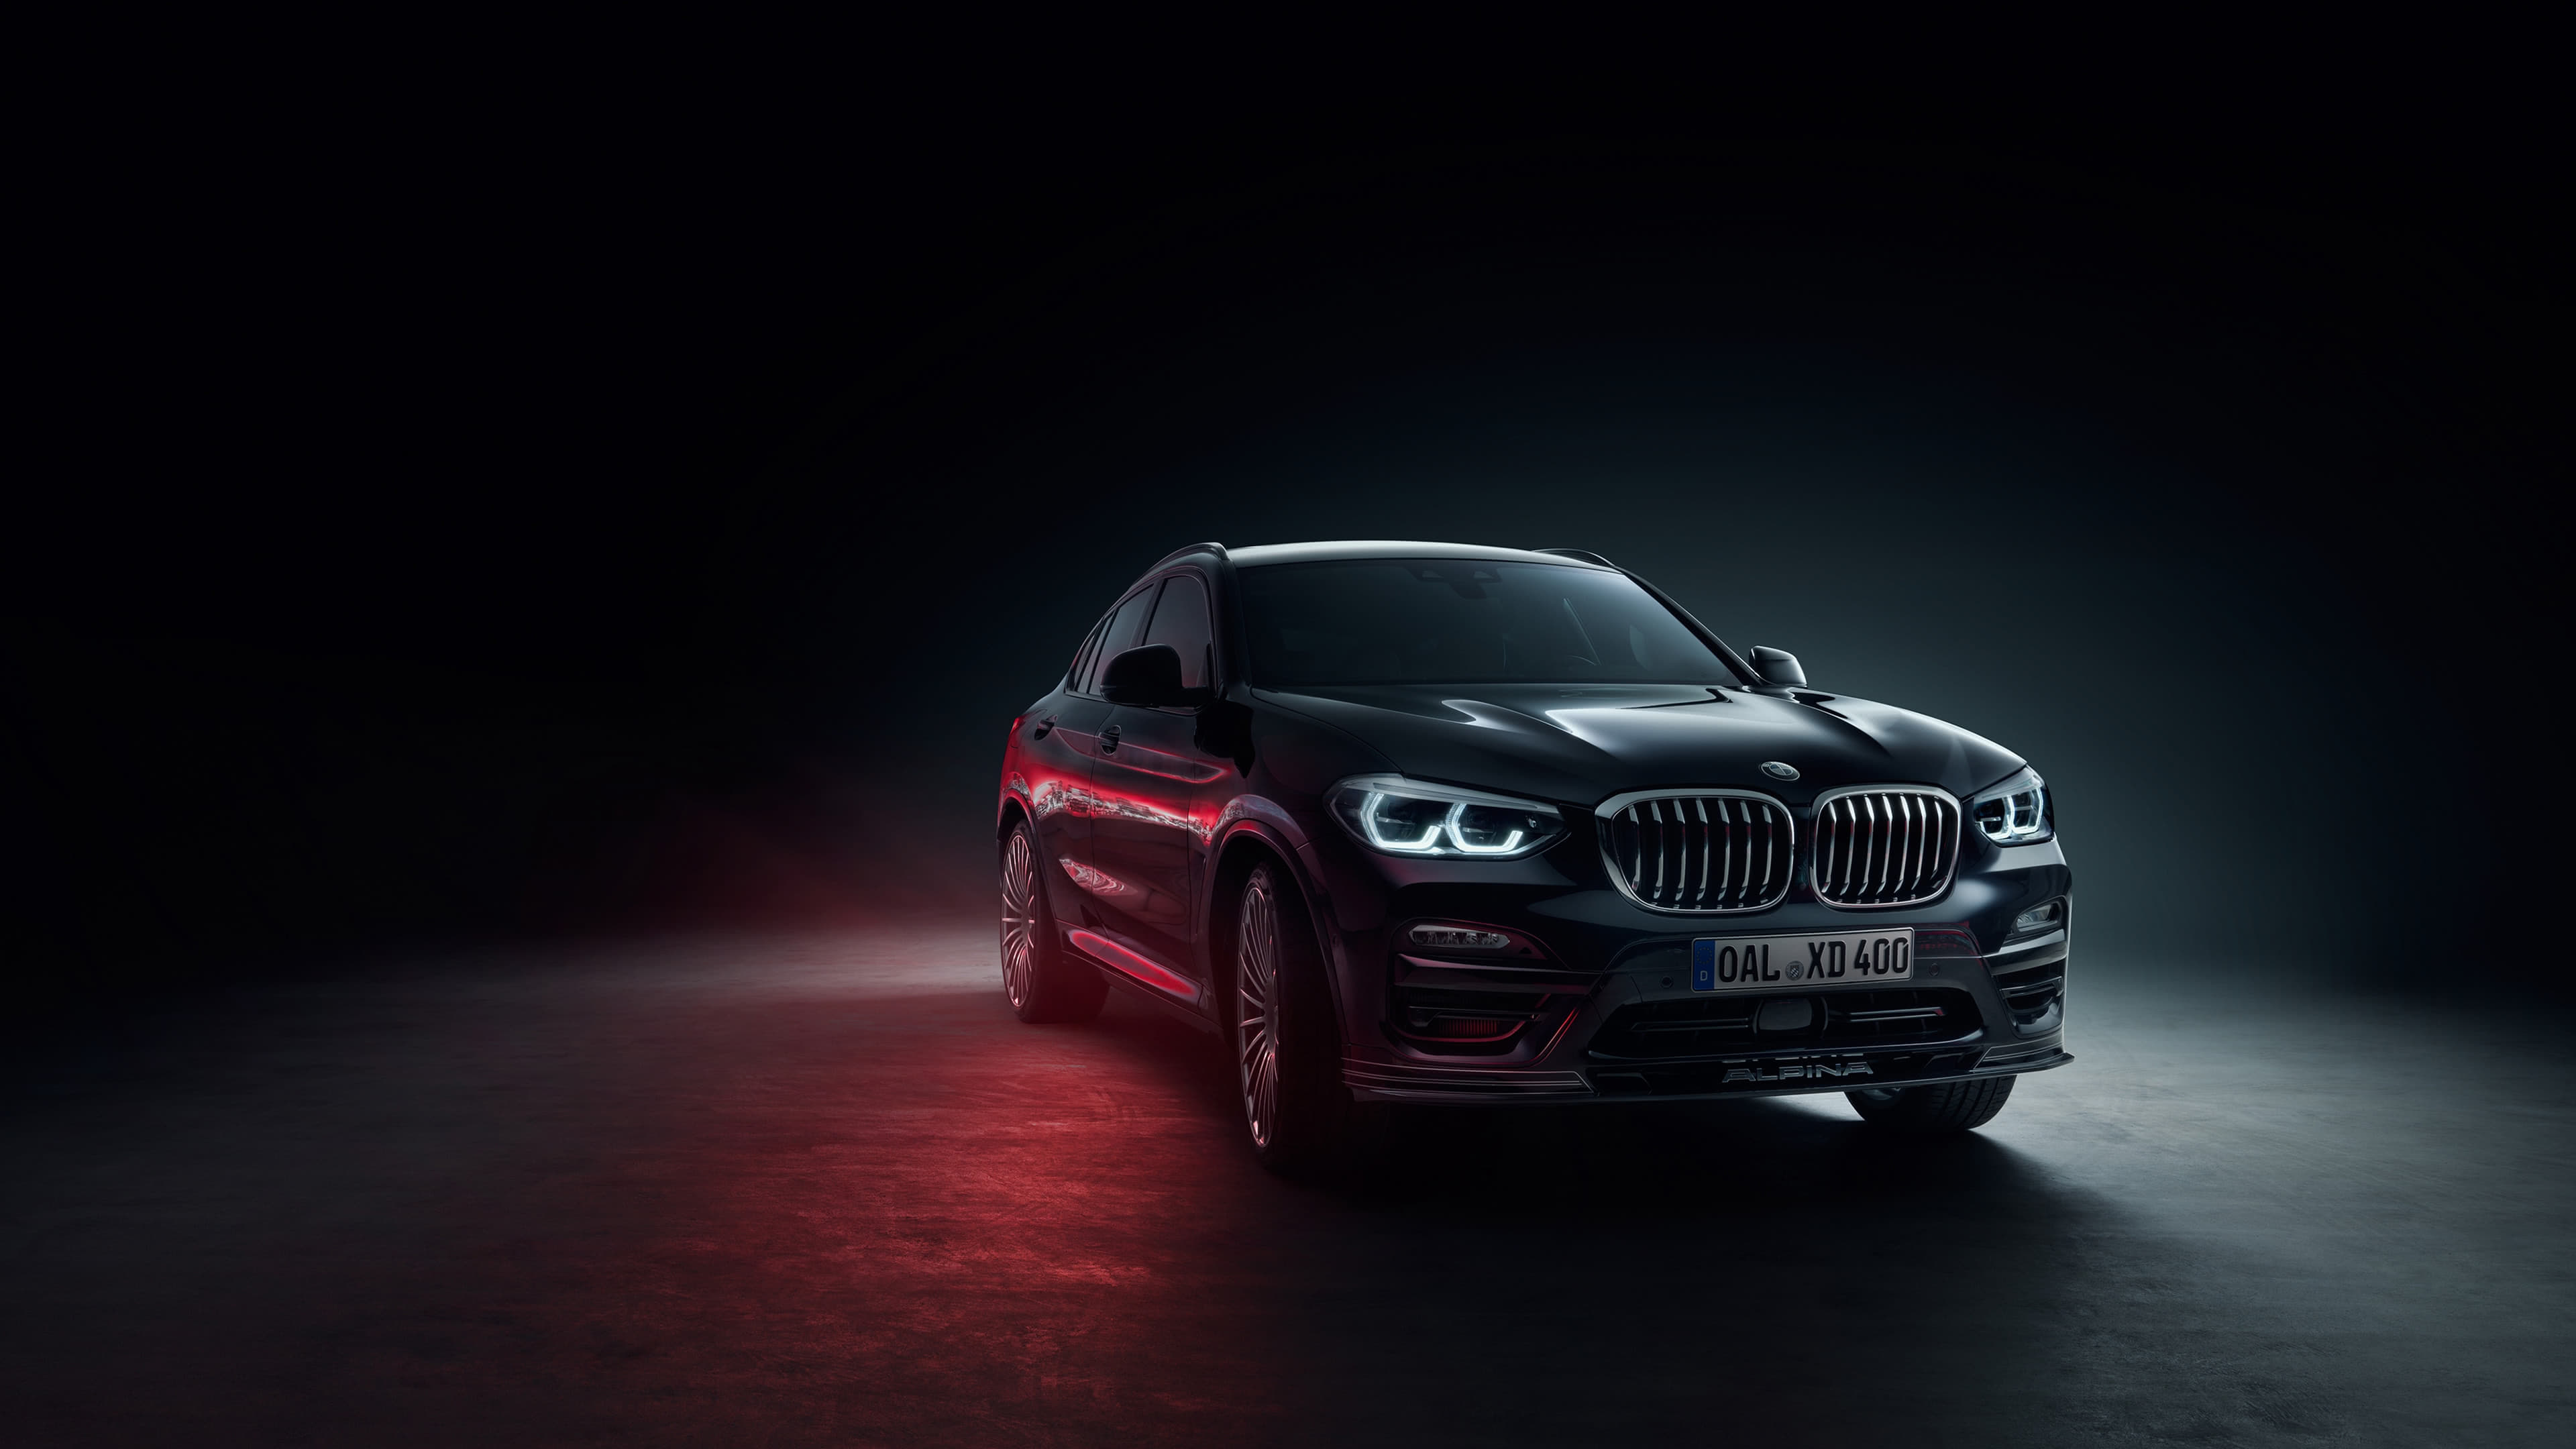 bmw alpina xd4 uhd 4k wallpaper